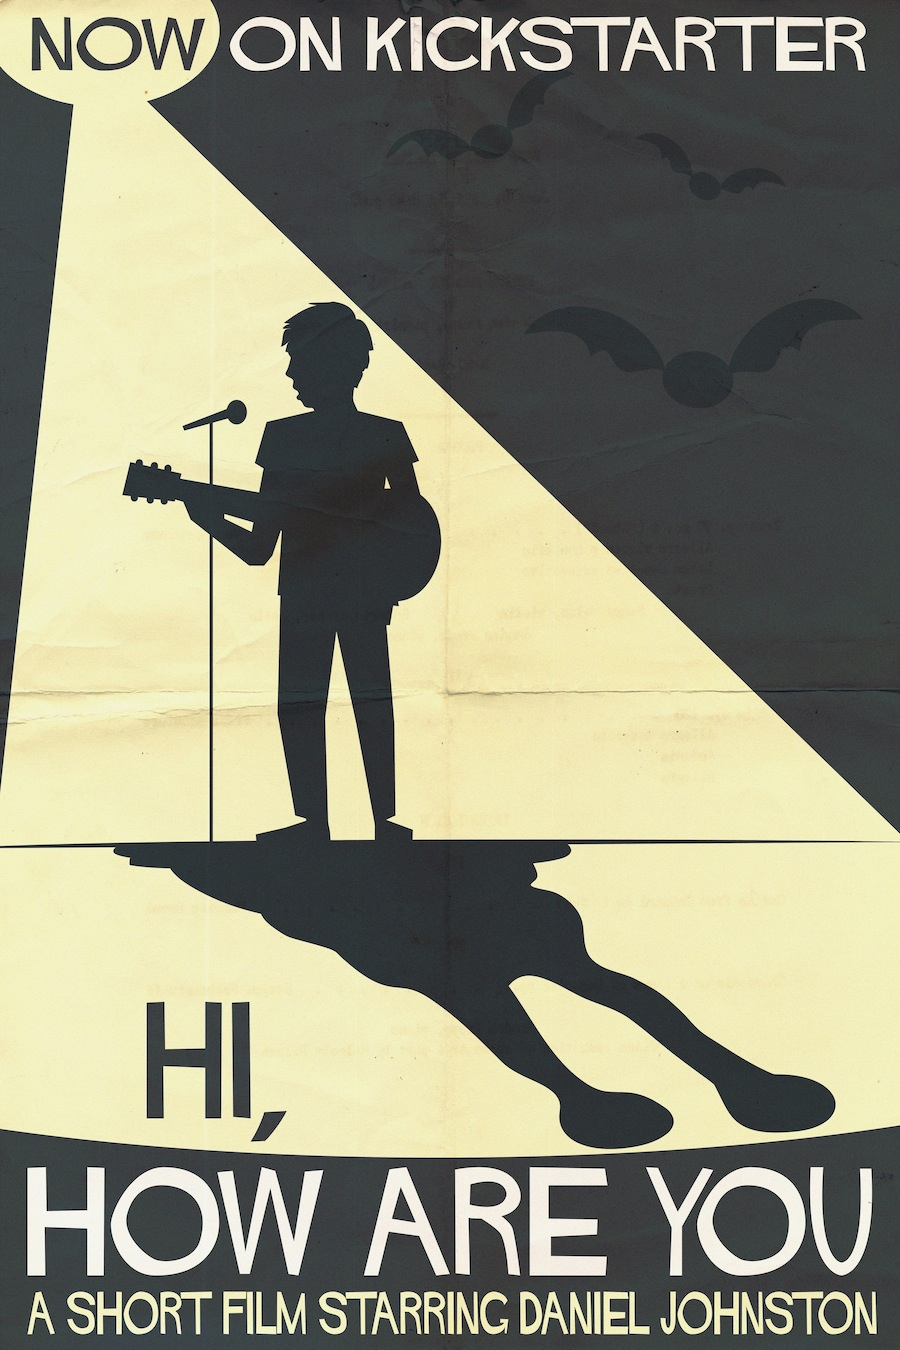 Hi, How Are You: A Short Film Starring Daniel Johnston Launches Kickstarter Campaign